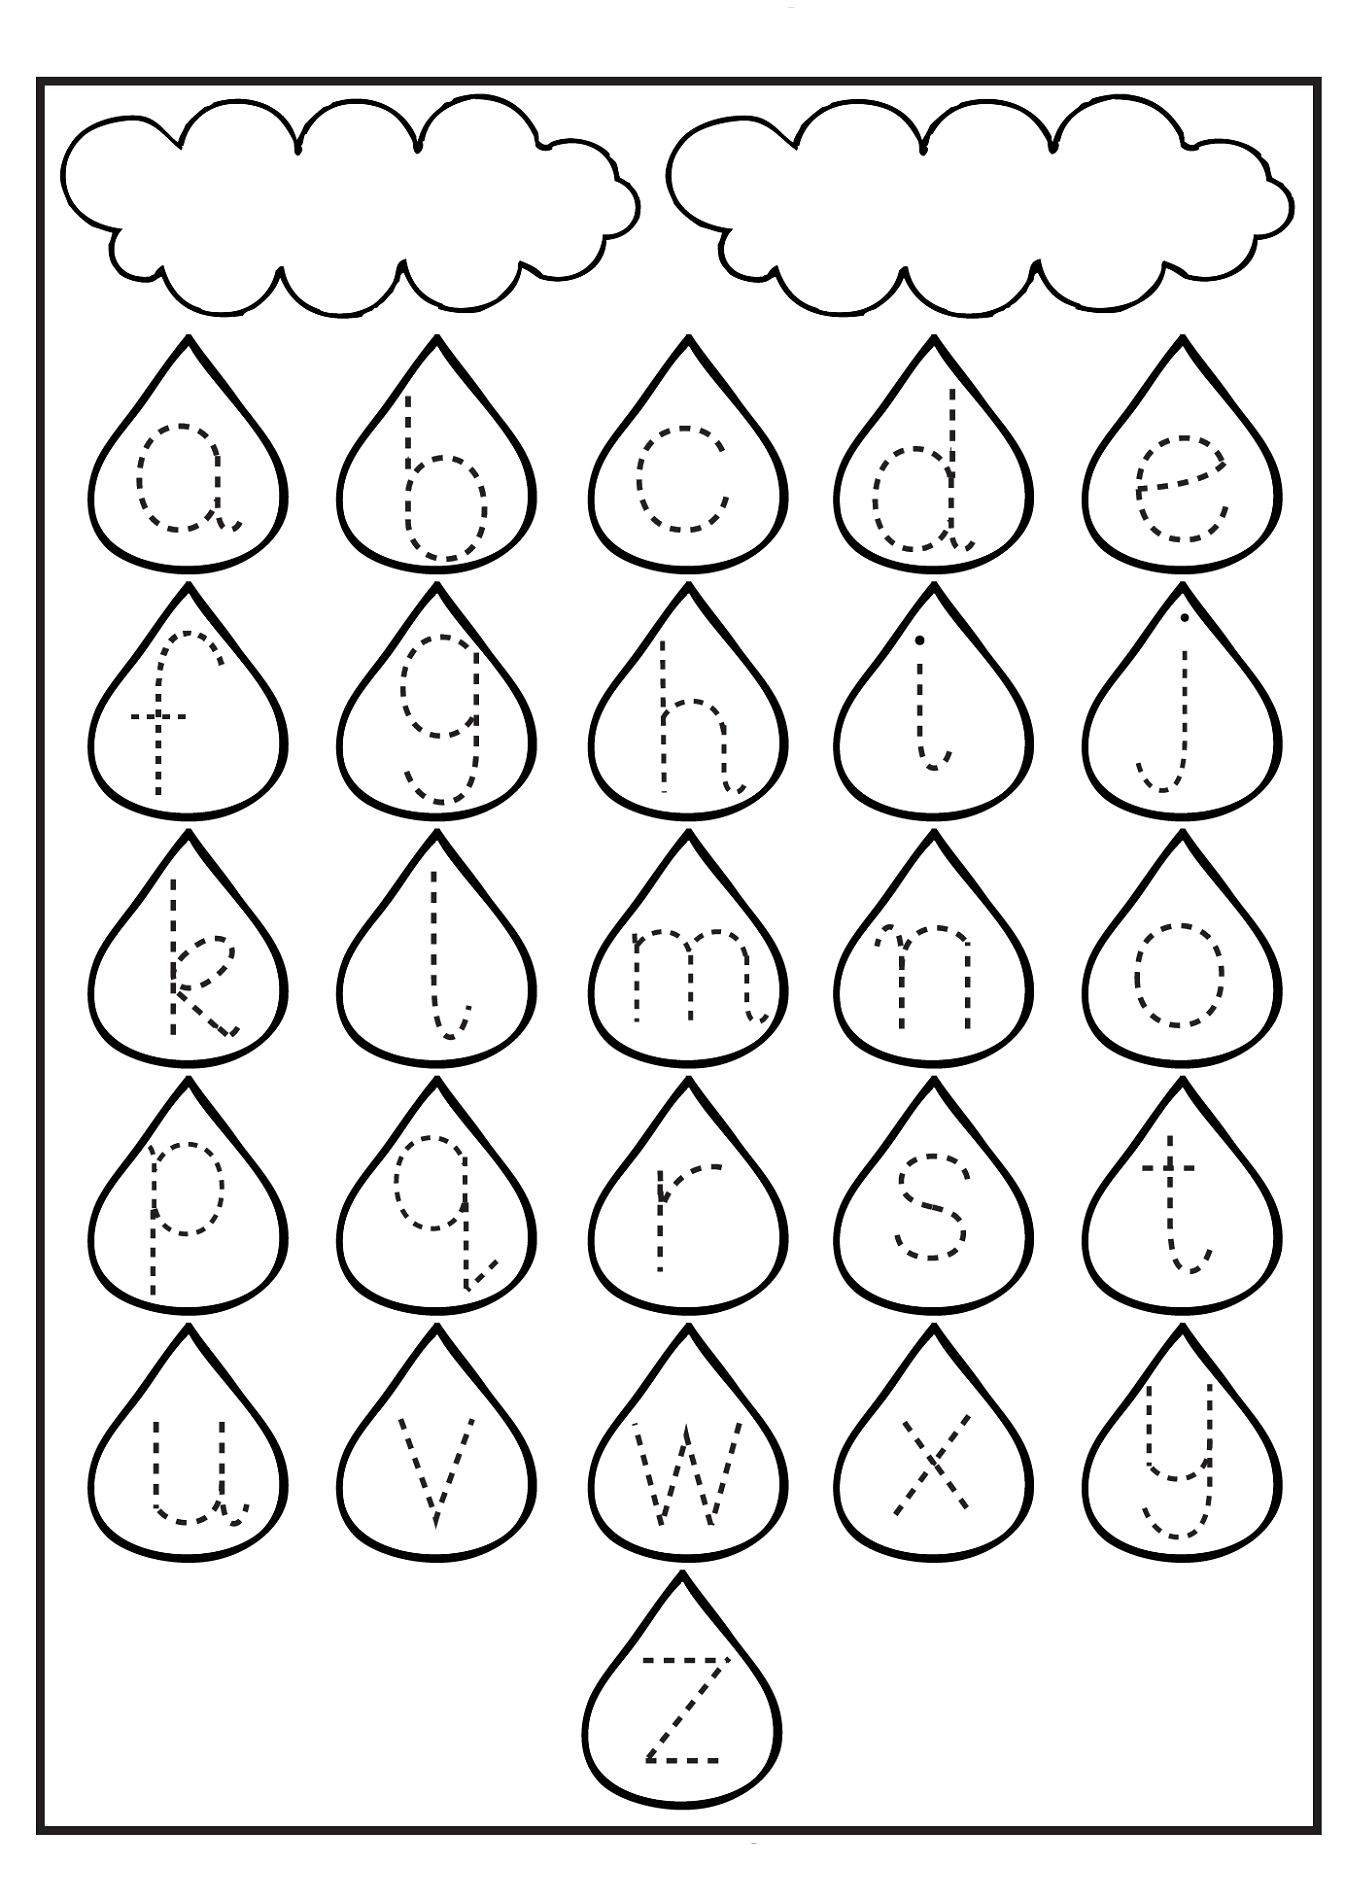 Tracing Lowercase Letters Printable Worksheets